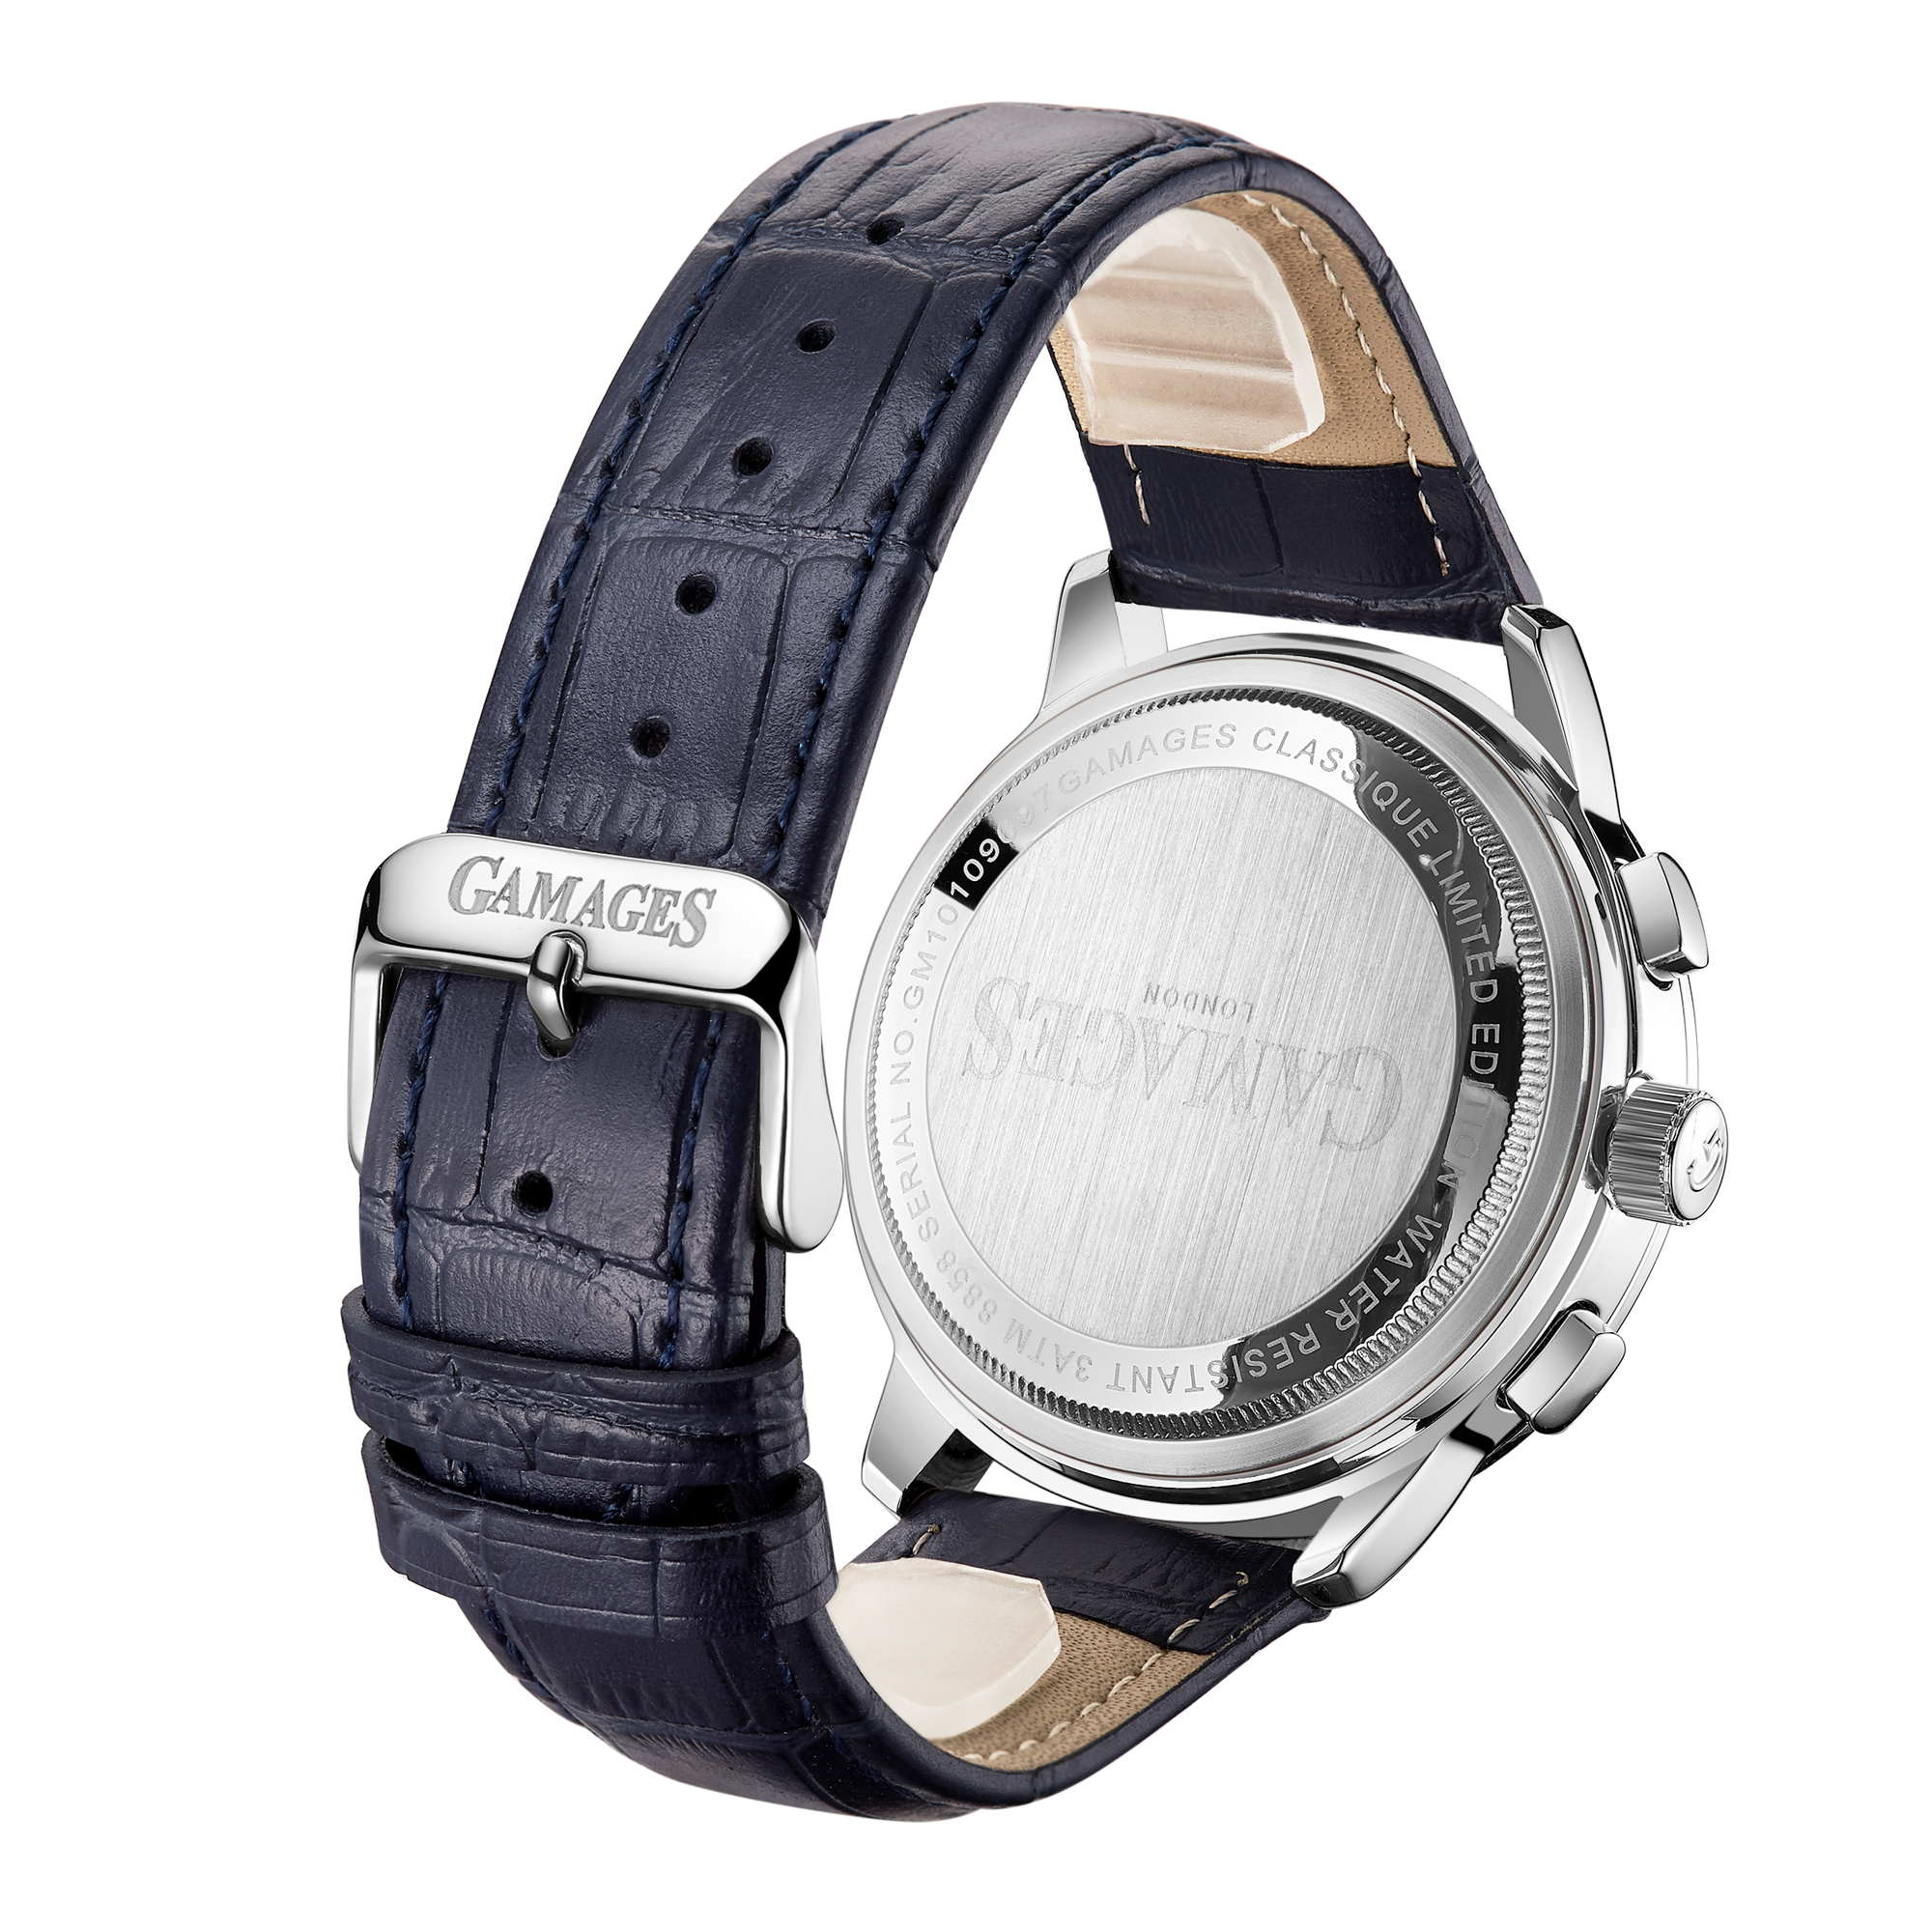 Ltd Edition Hand Assembled Gamages Classique Automatic Midnight Blue – 5 Yr Warranty & Free Delivery - Image 4 of 4